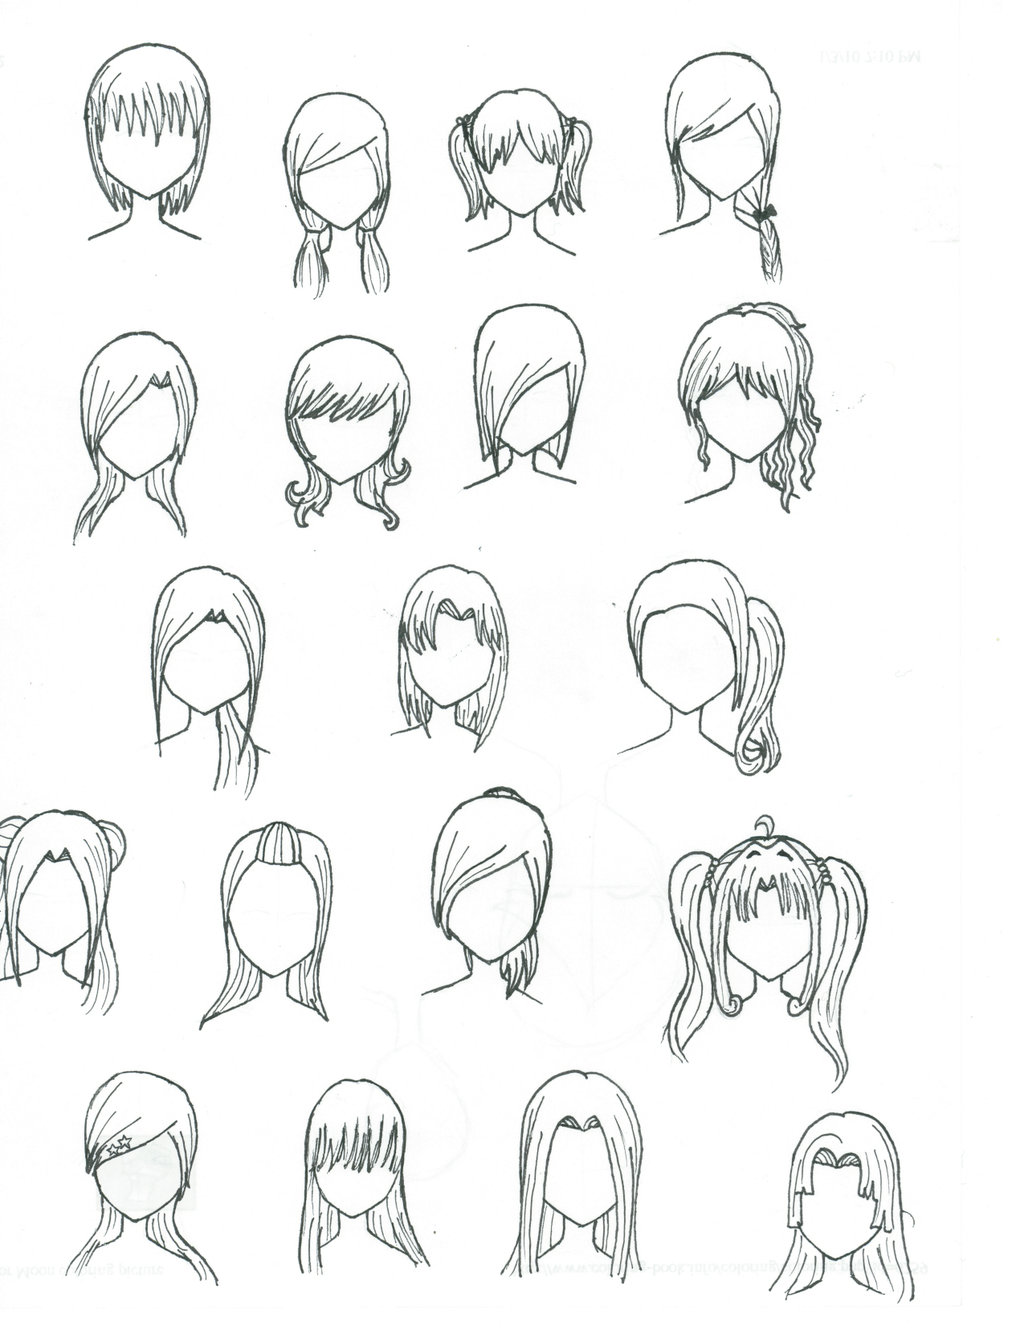 Suzuya Miku Blog Manga Hair Drawings Pencil Drawings Of Animals